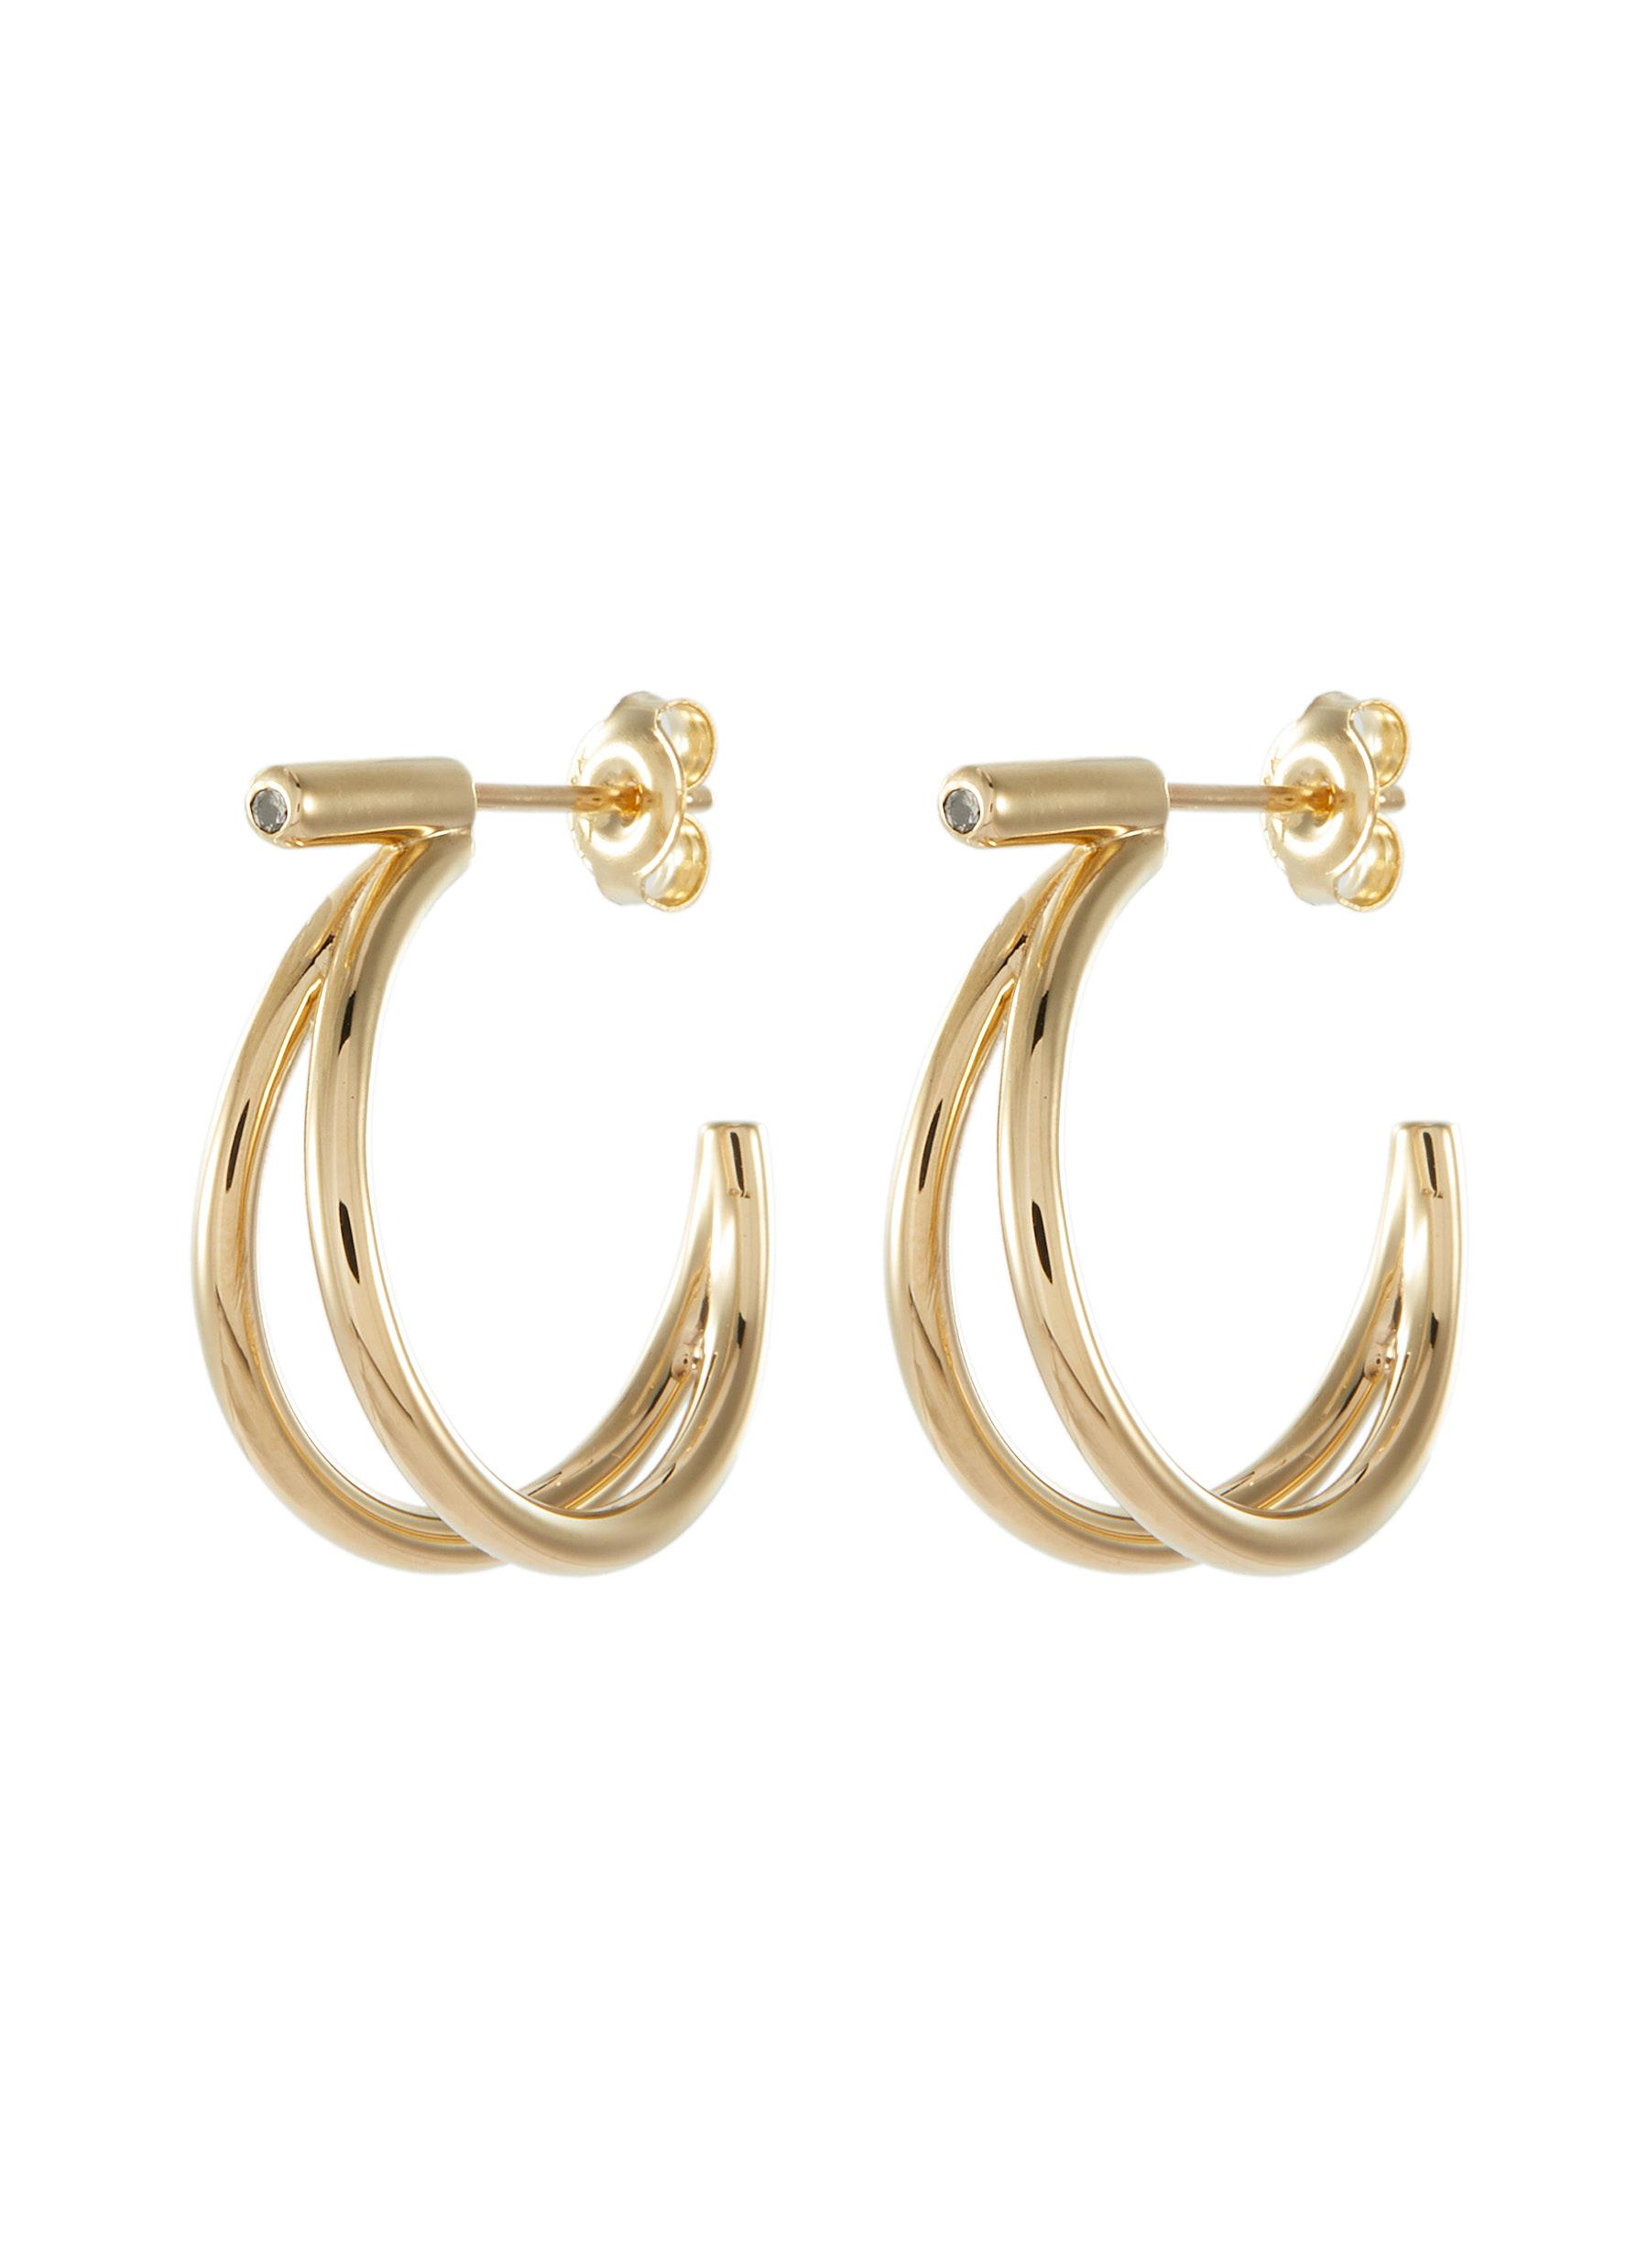 00ab211c43a973 HYÈRES LOR | 'Noailles' diamond 14k yellow gold double hoop earrings ...